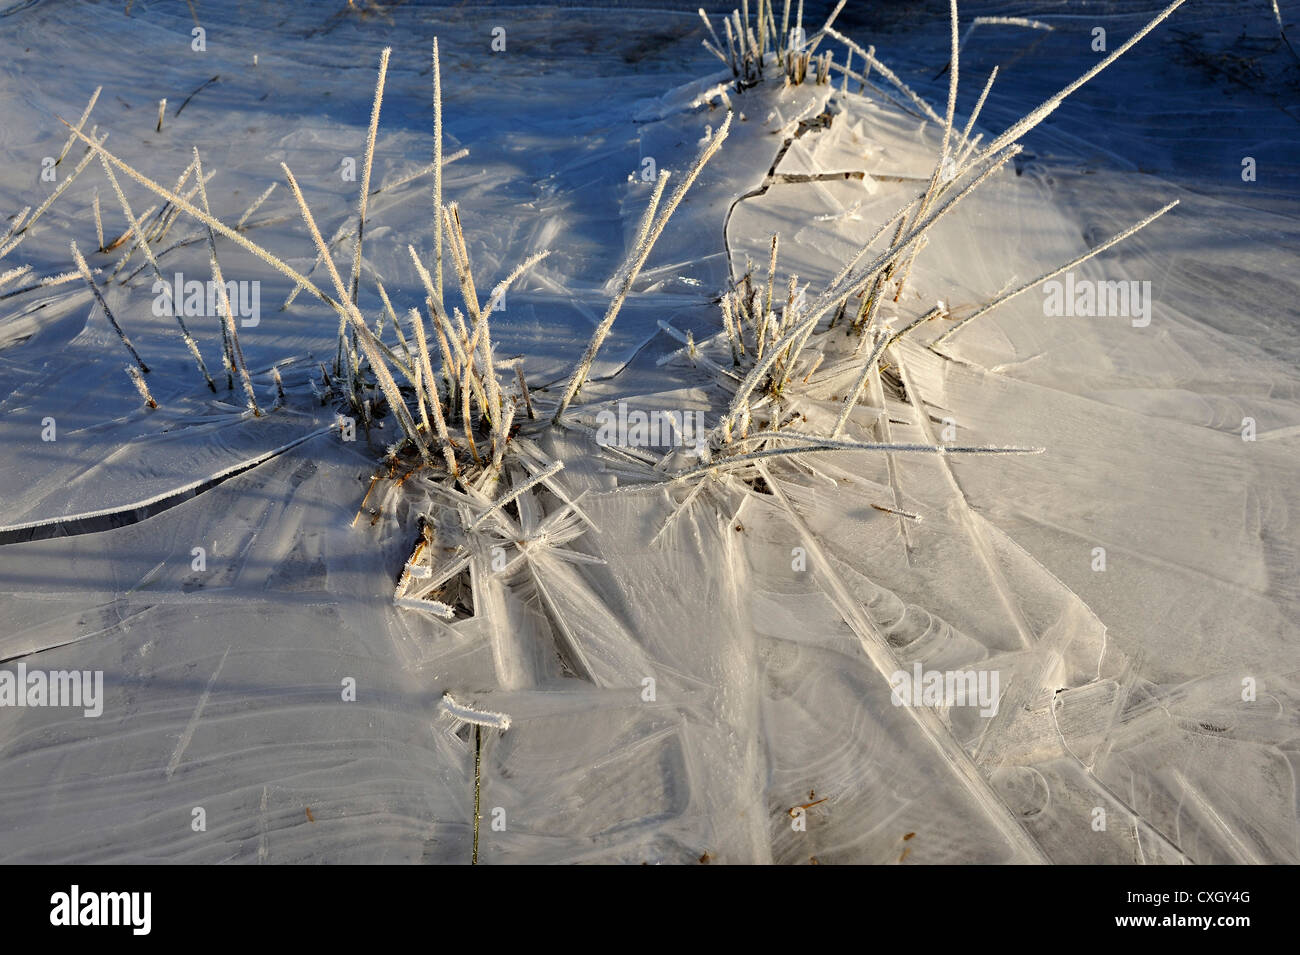 Frozen grasses and thin ice in a flooded field create pattern and texture, Killin, Scotland - Stock Image